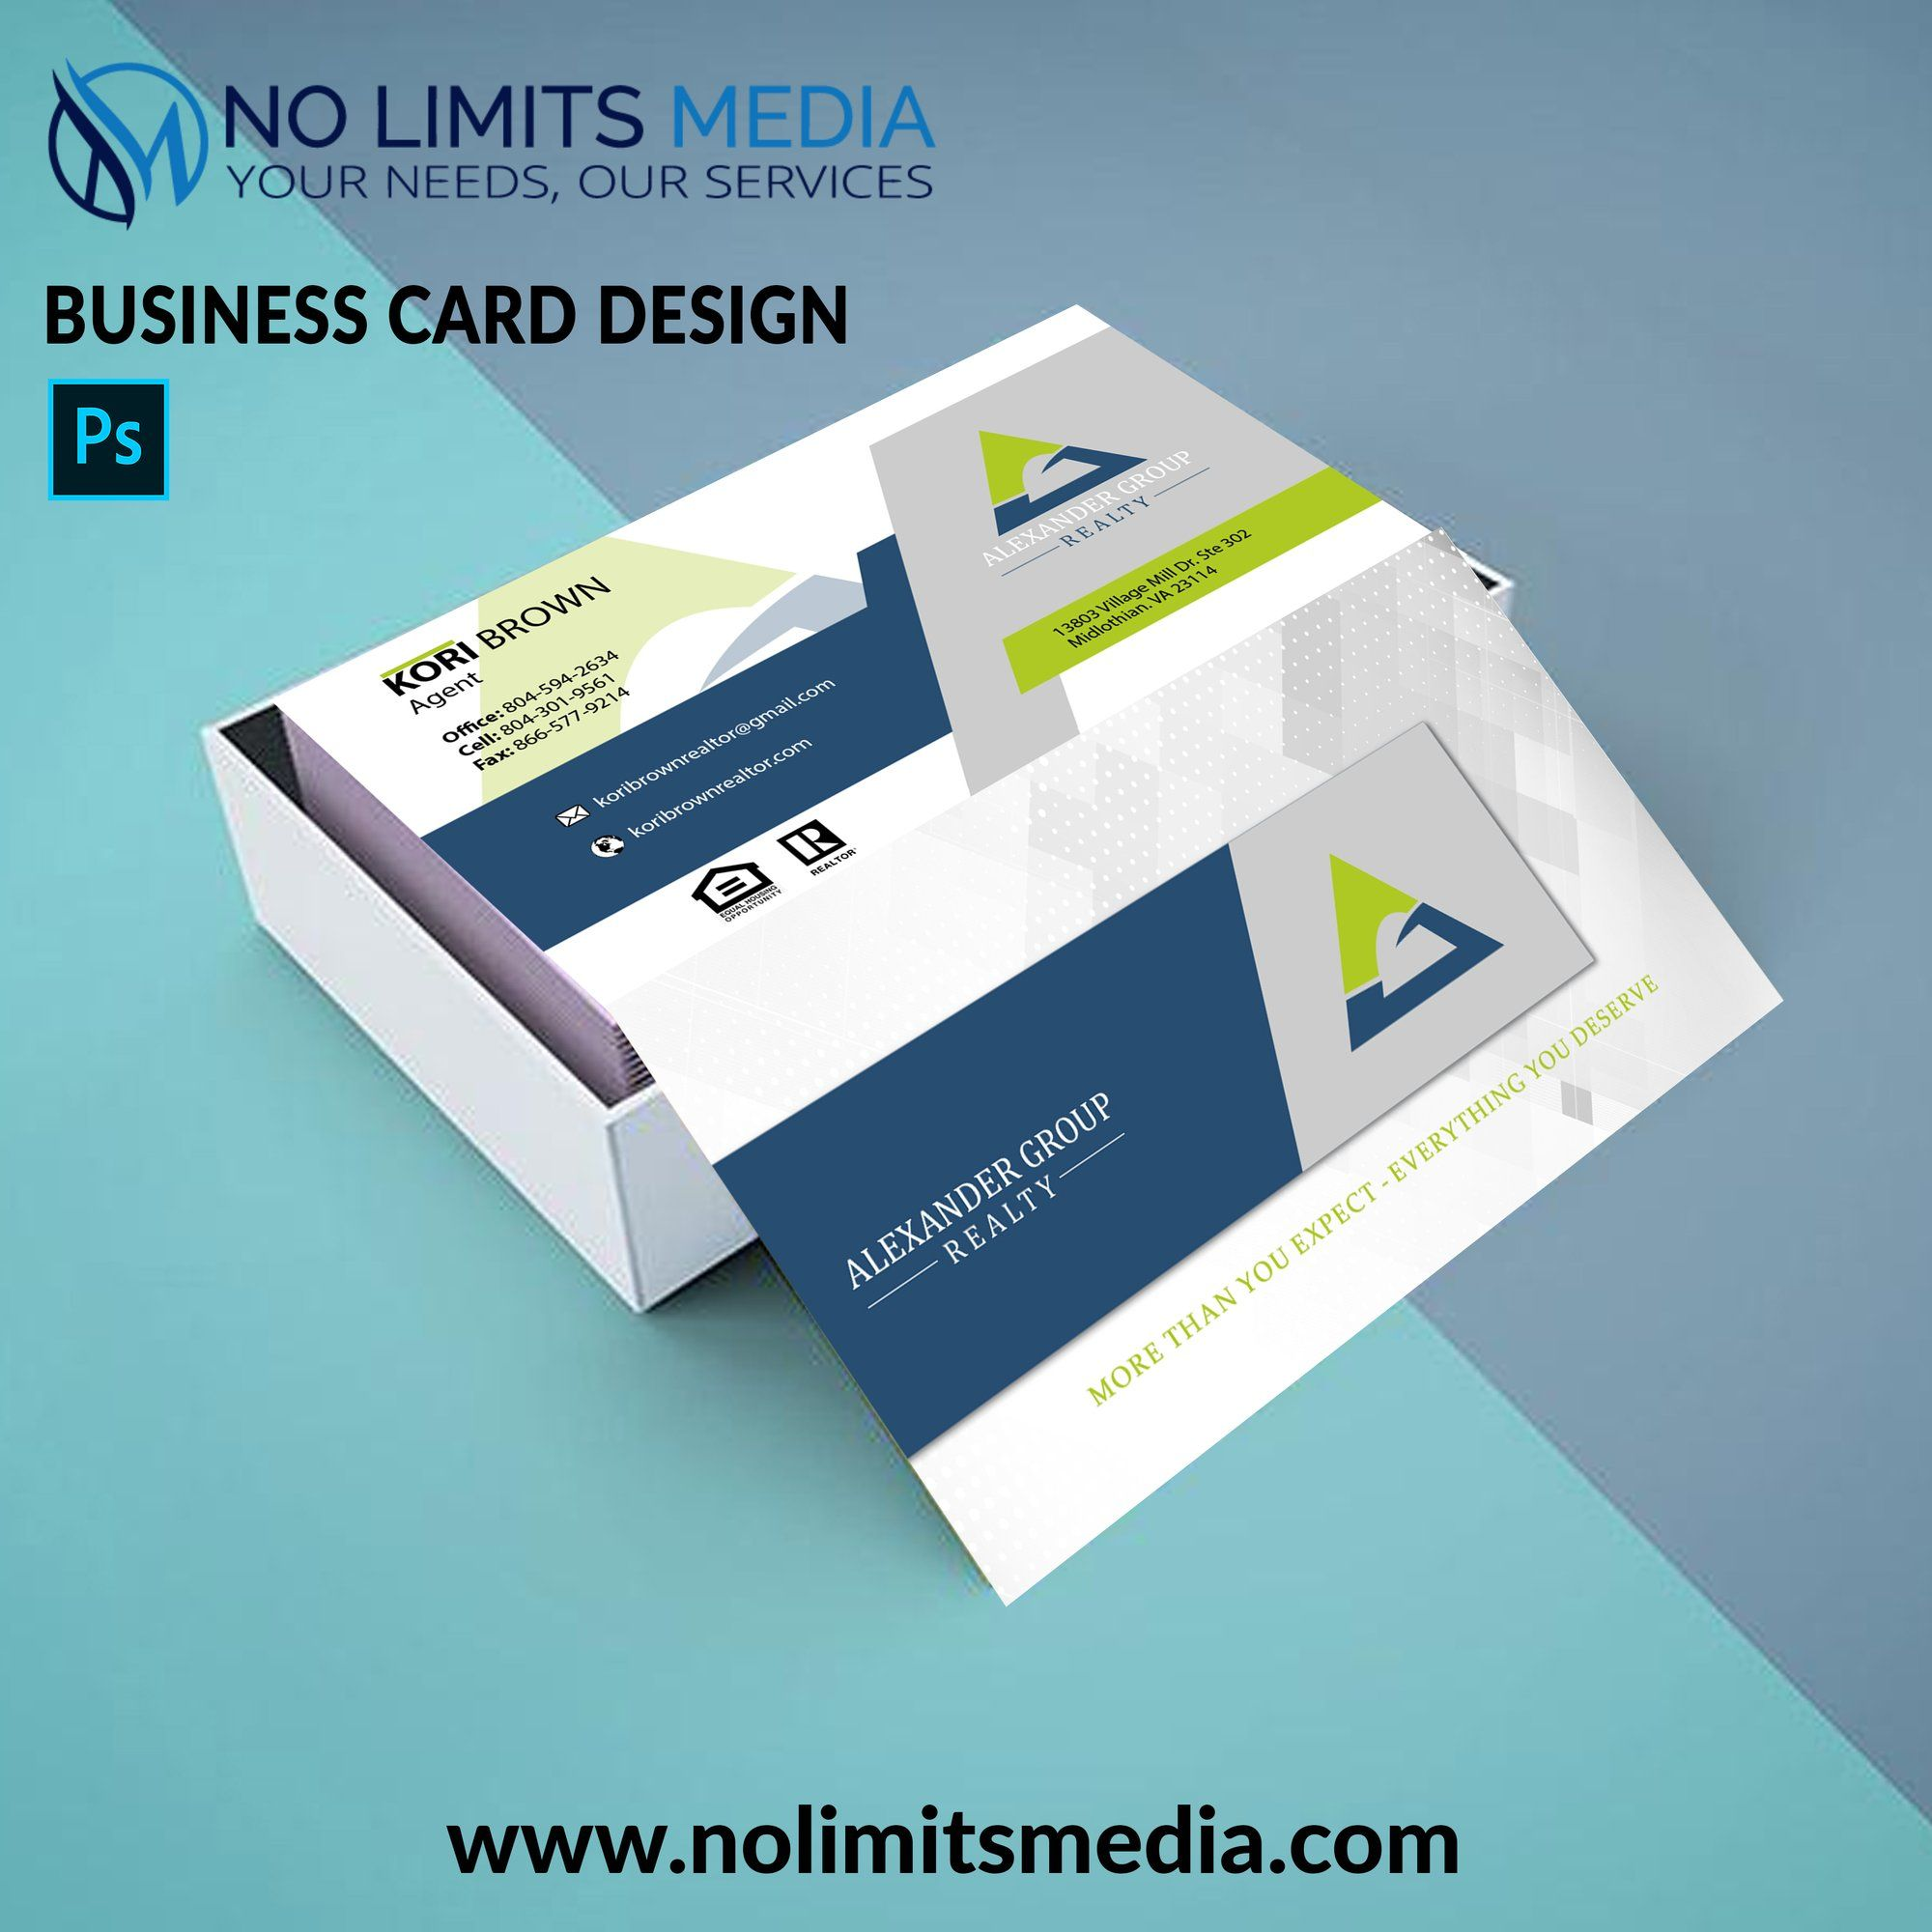 Check Our Business Card Design For Alexander Group Realty This Is How You Should Design Your Business Card Business Card Design Card Design Services Business